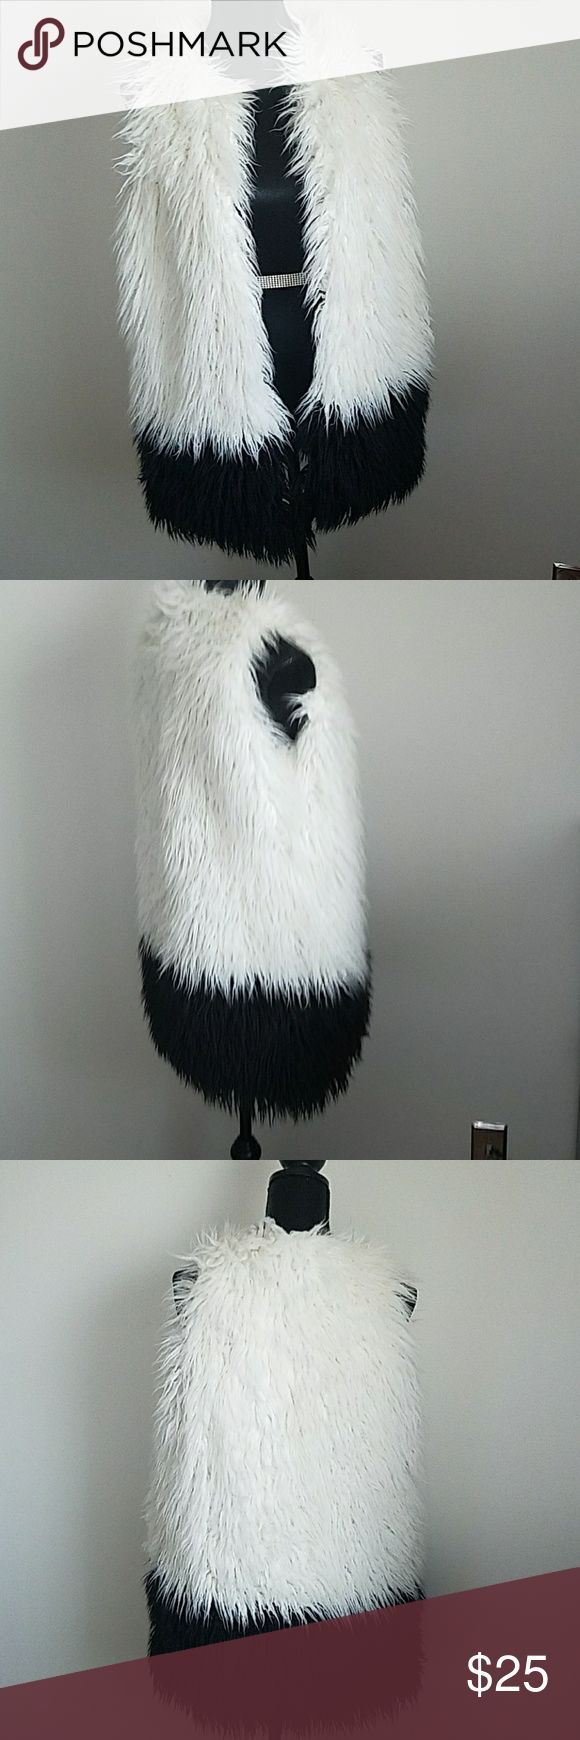 Black and white vest Black and white vest lasanostla Jackets & Coats Vests